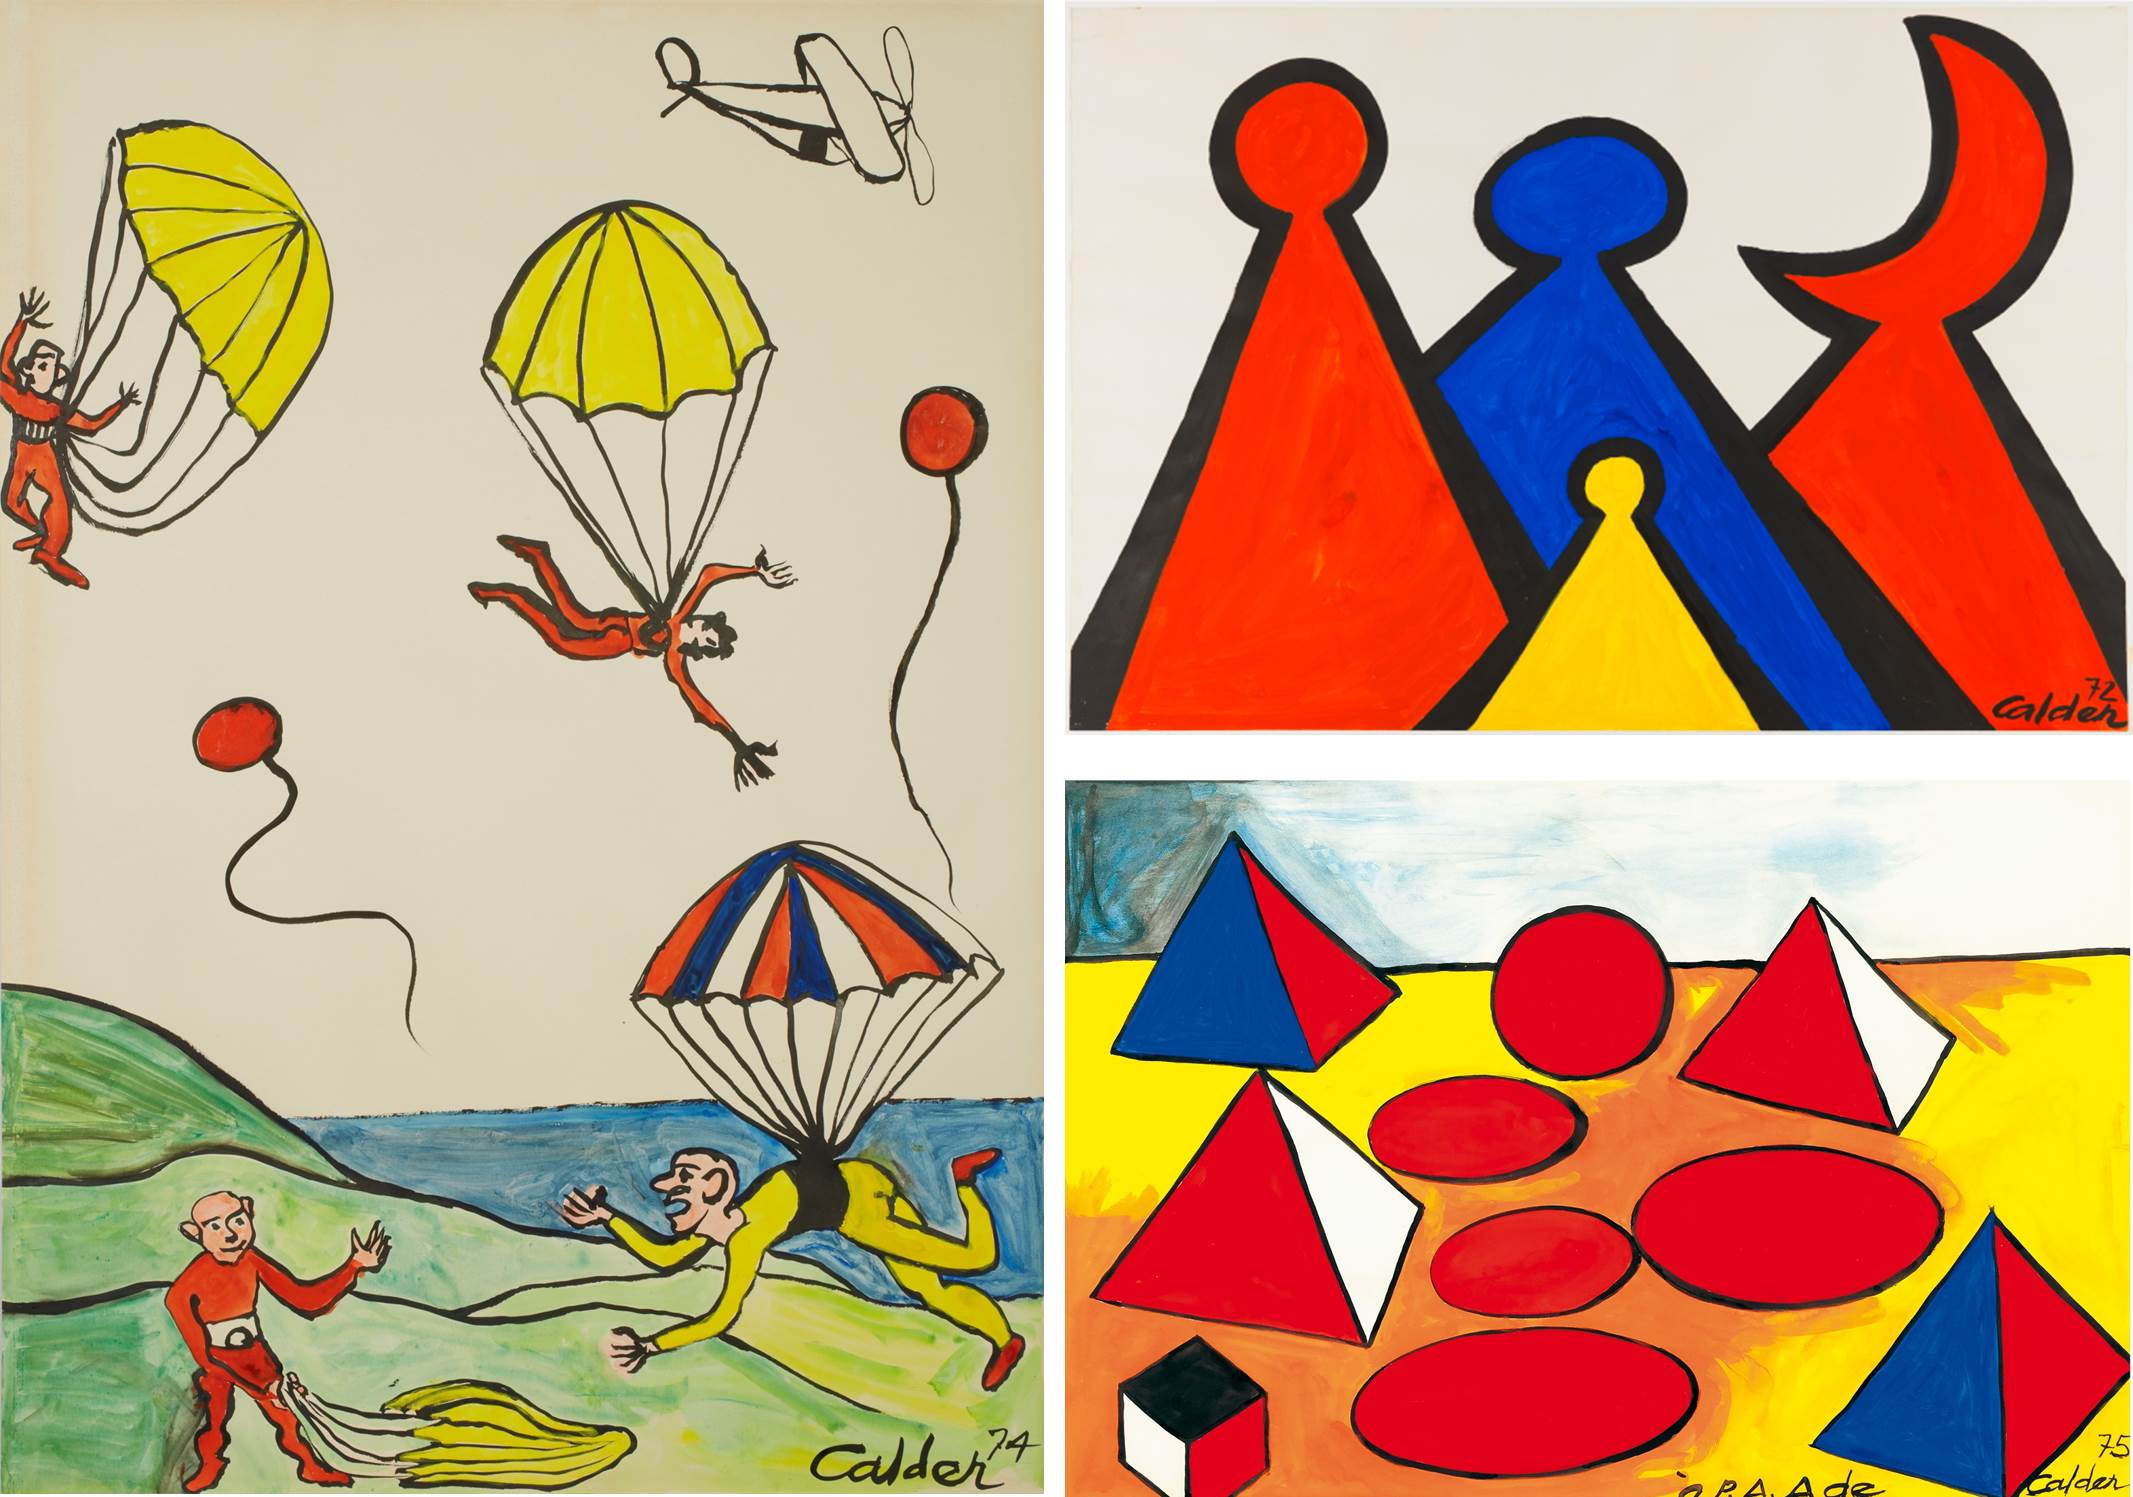 1. L'Ile Verte, 1974, Gouache and ink on paper, 109.0x74.6cm, Private Collection 2. The Red Crescent, 1972, Gouache on paper, 74.9x109.9cm, Private Collection 3. Pyramids, 1975, Gouache on paper, 74.2x109.2cm, Private Collection